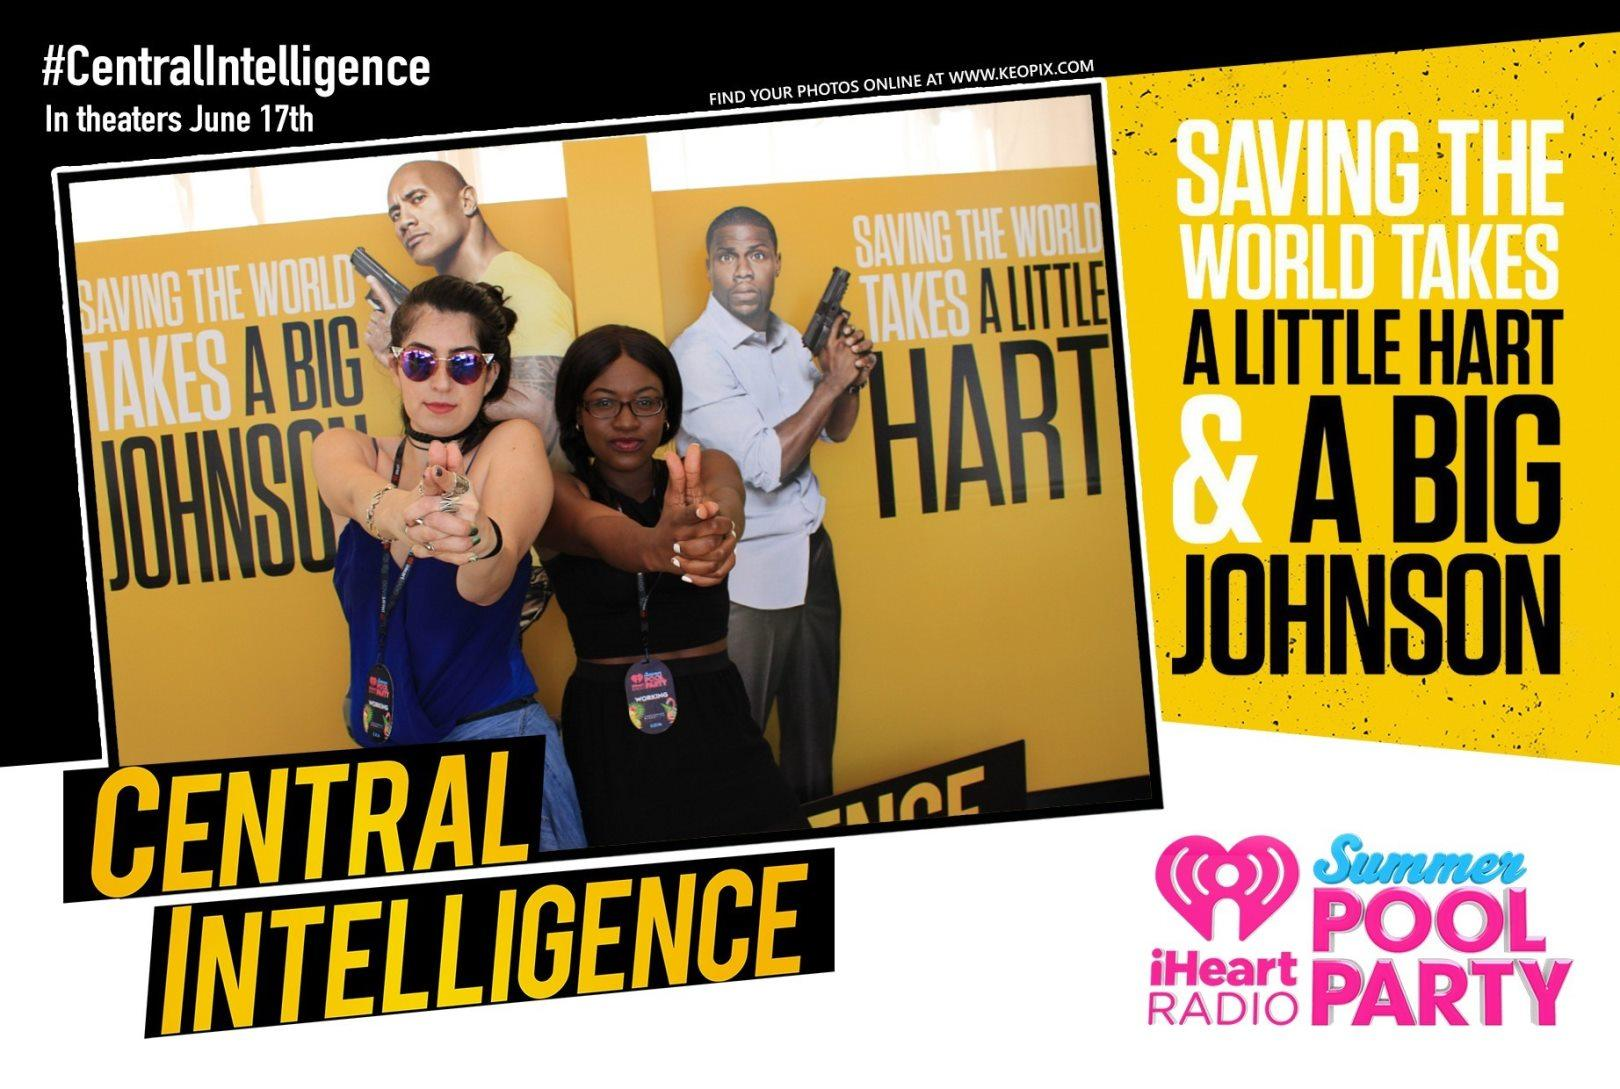 iheartradio summer pool party 2016, iheartradio summer pool party, central intelligence